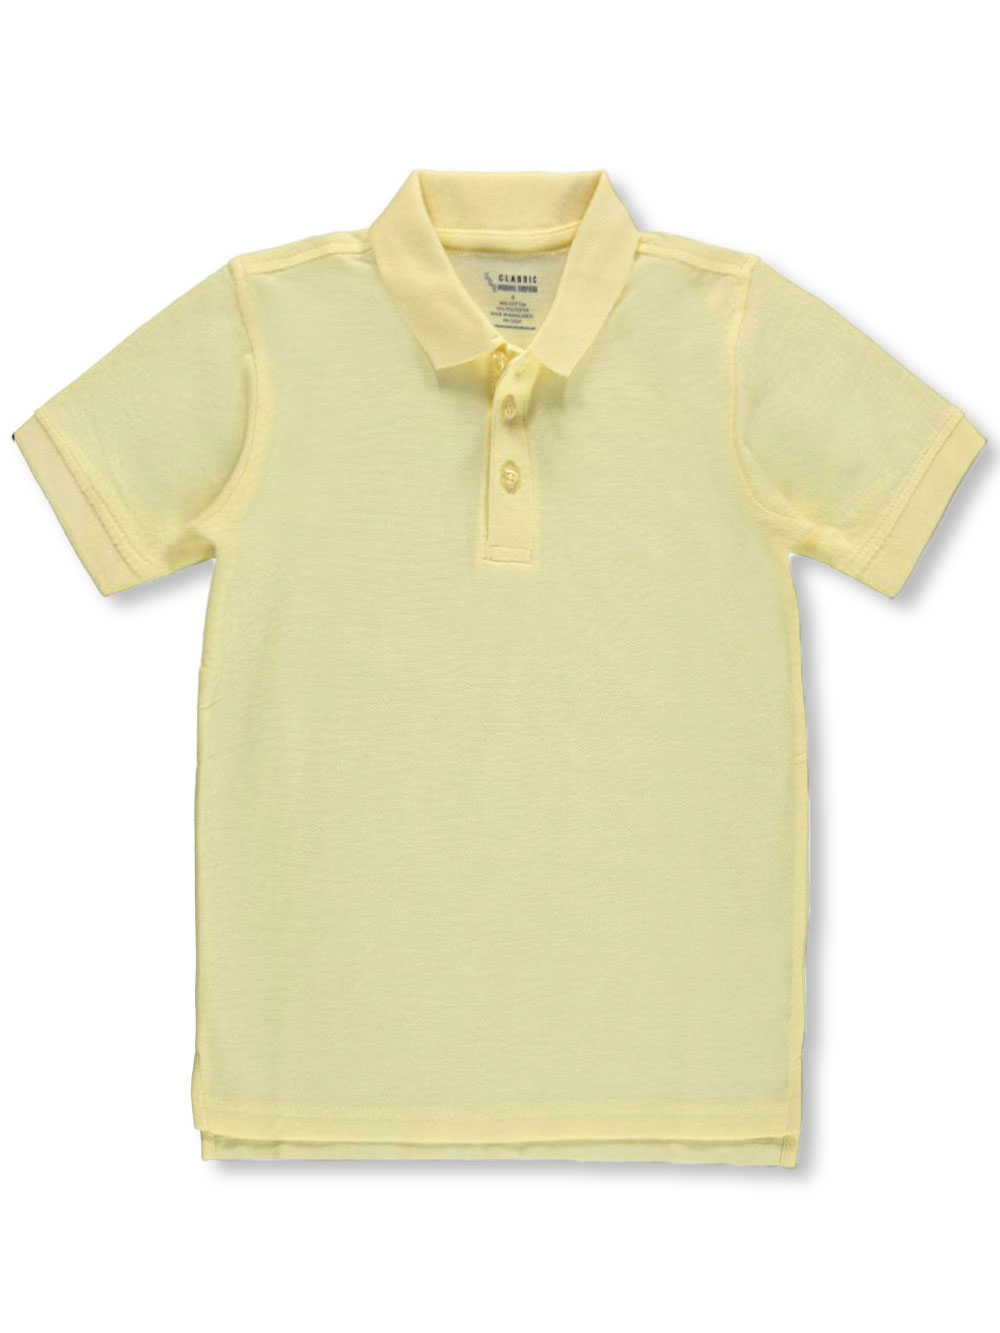 Classic School Uniform Pique Polo (Adult Sizes S - XXL) - yellow, m